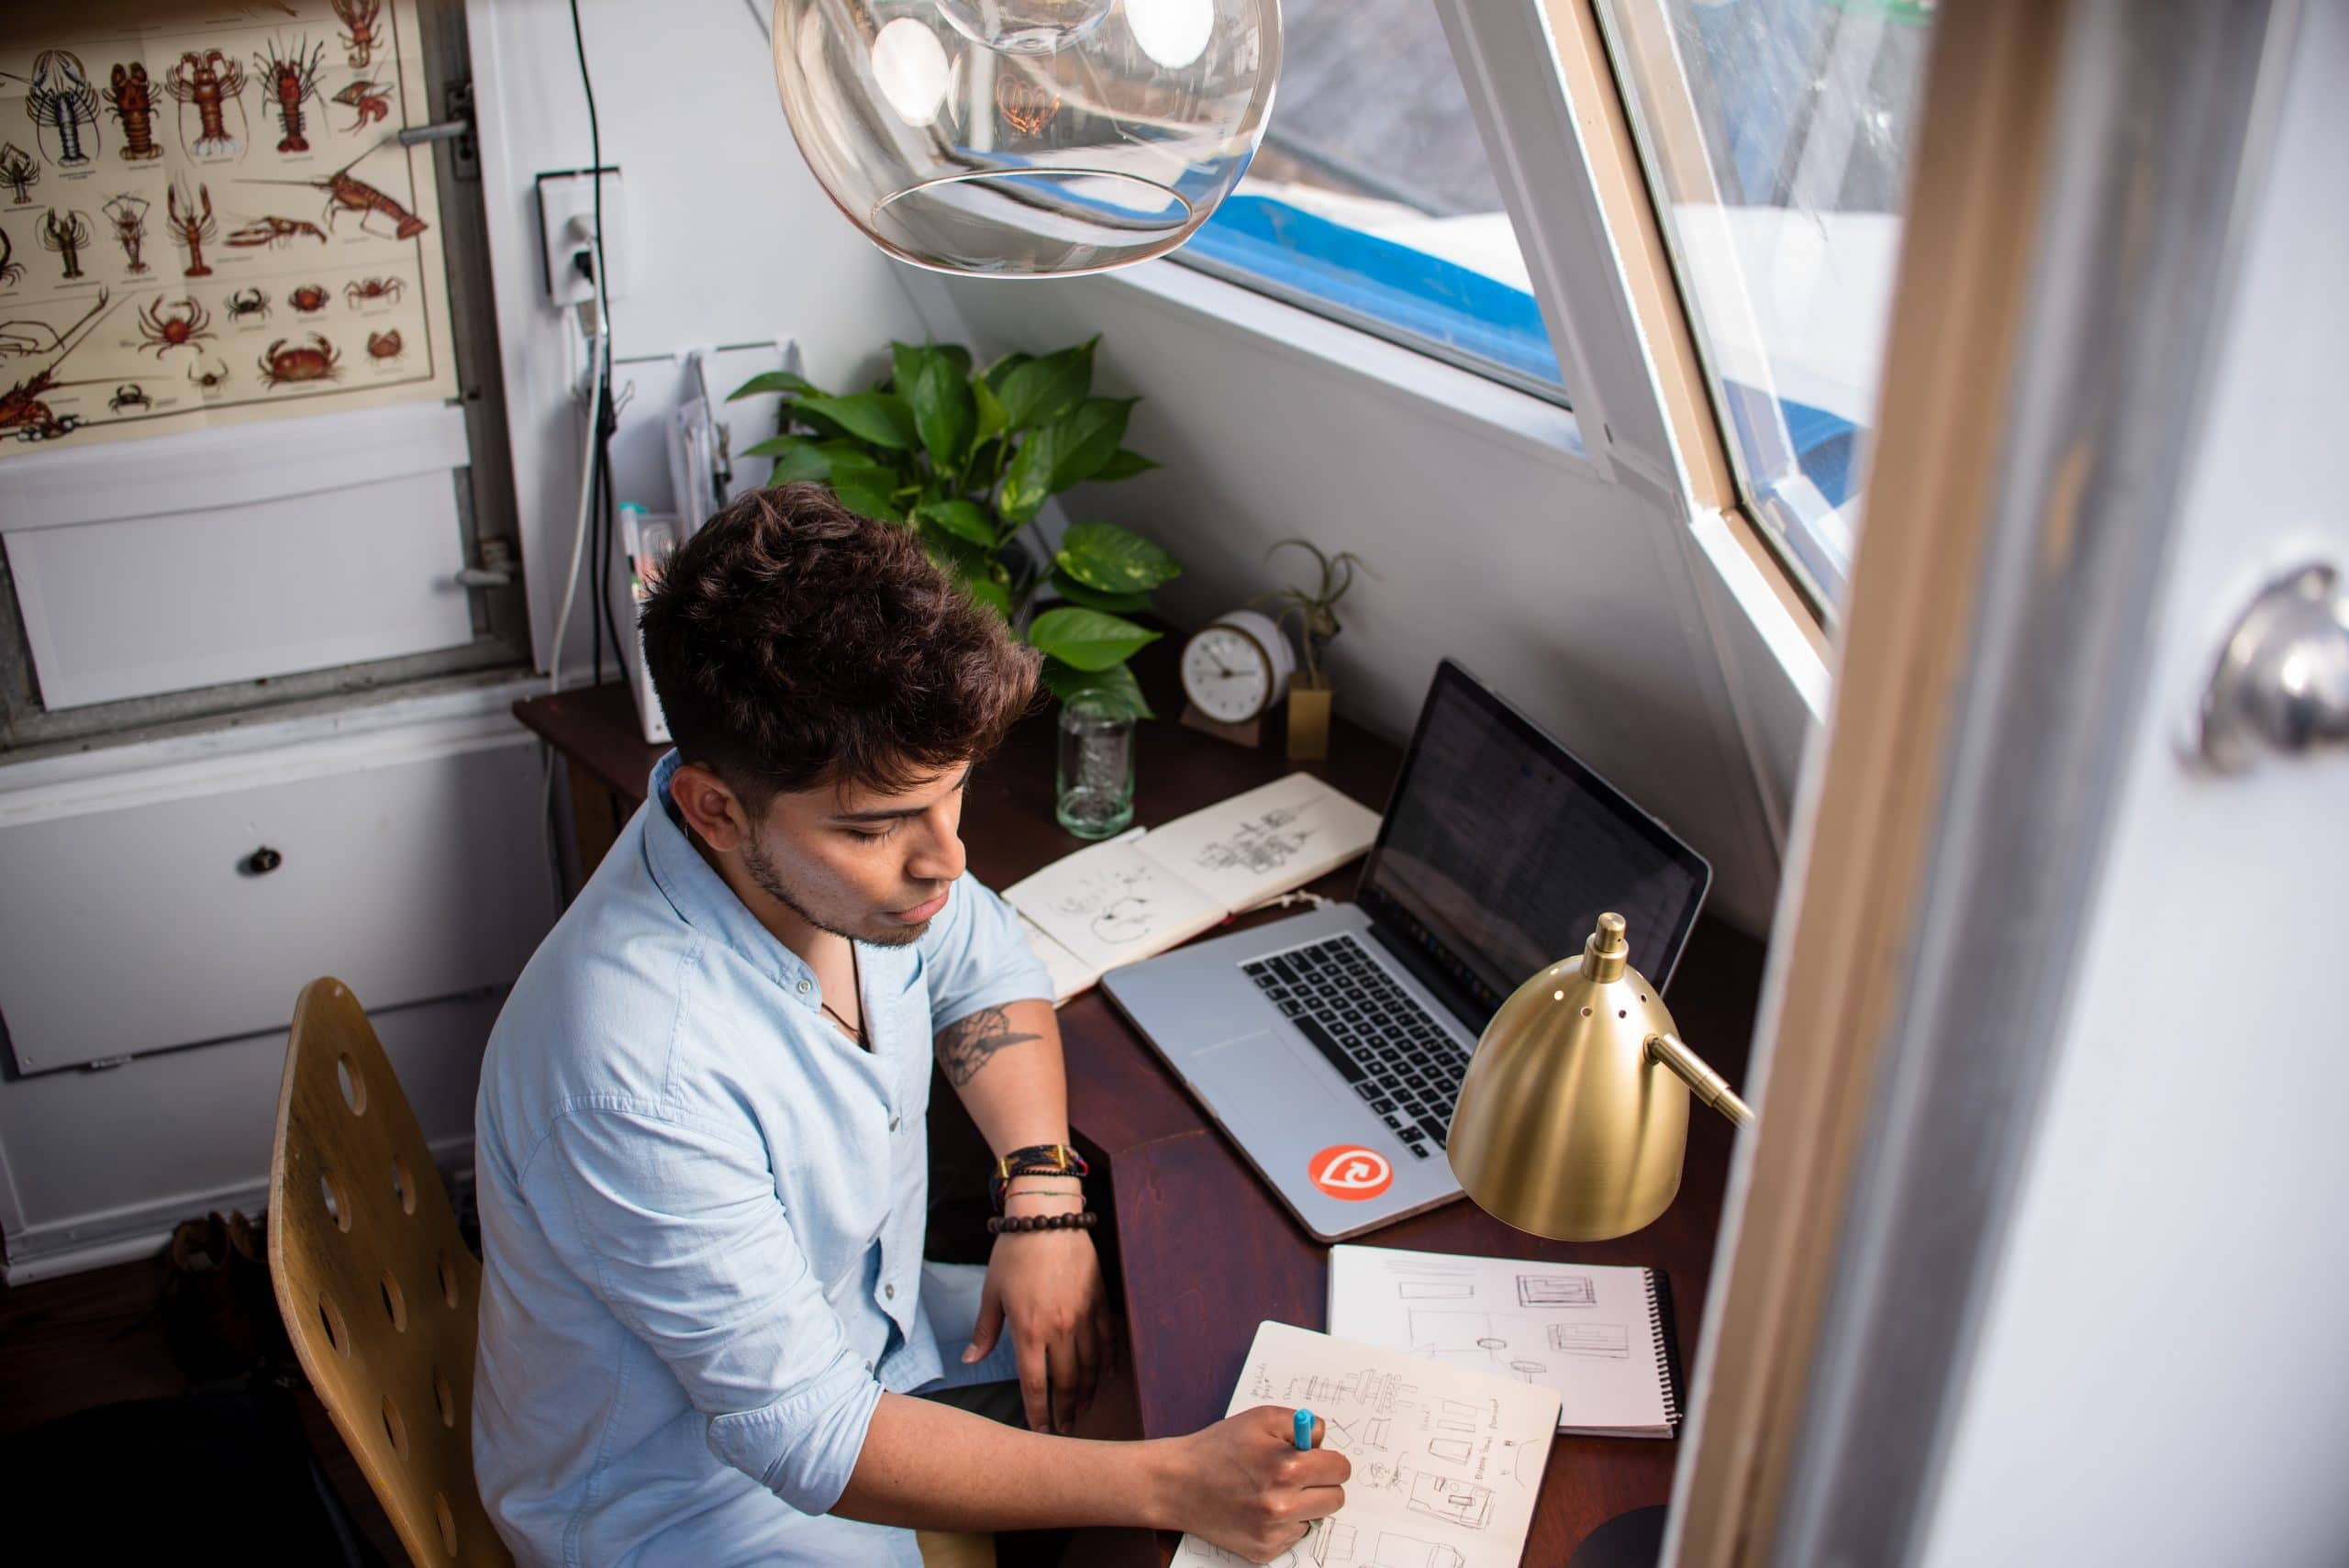 A live chat agents working from home sits at a desk in front of a window taking notes.